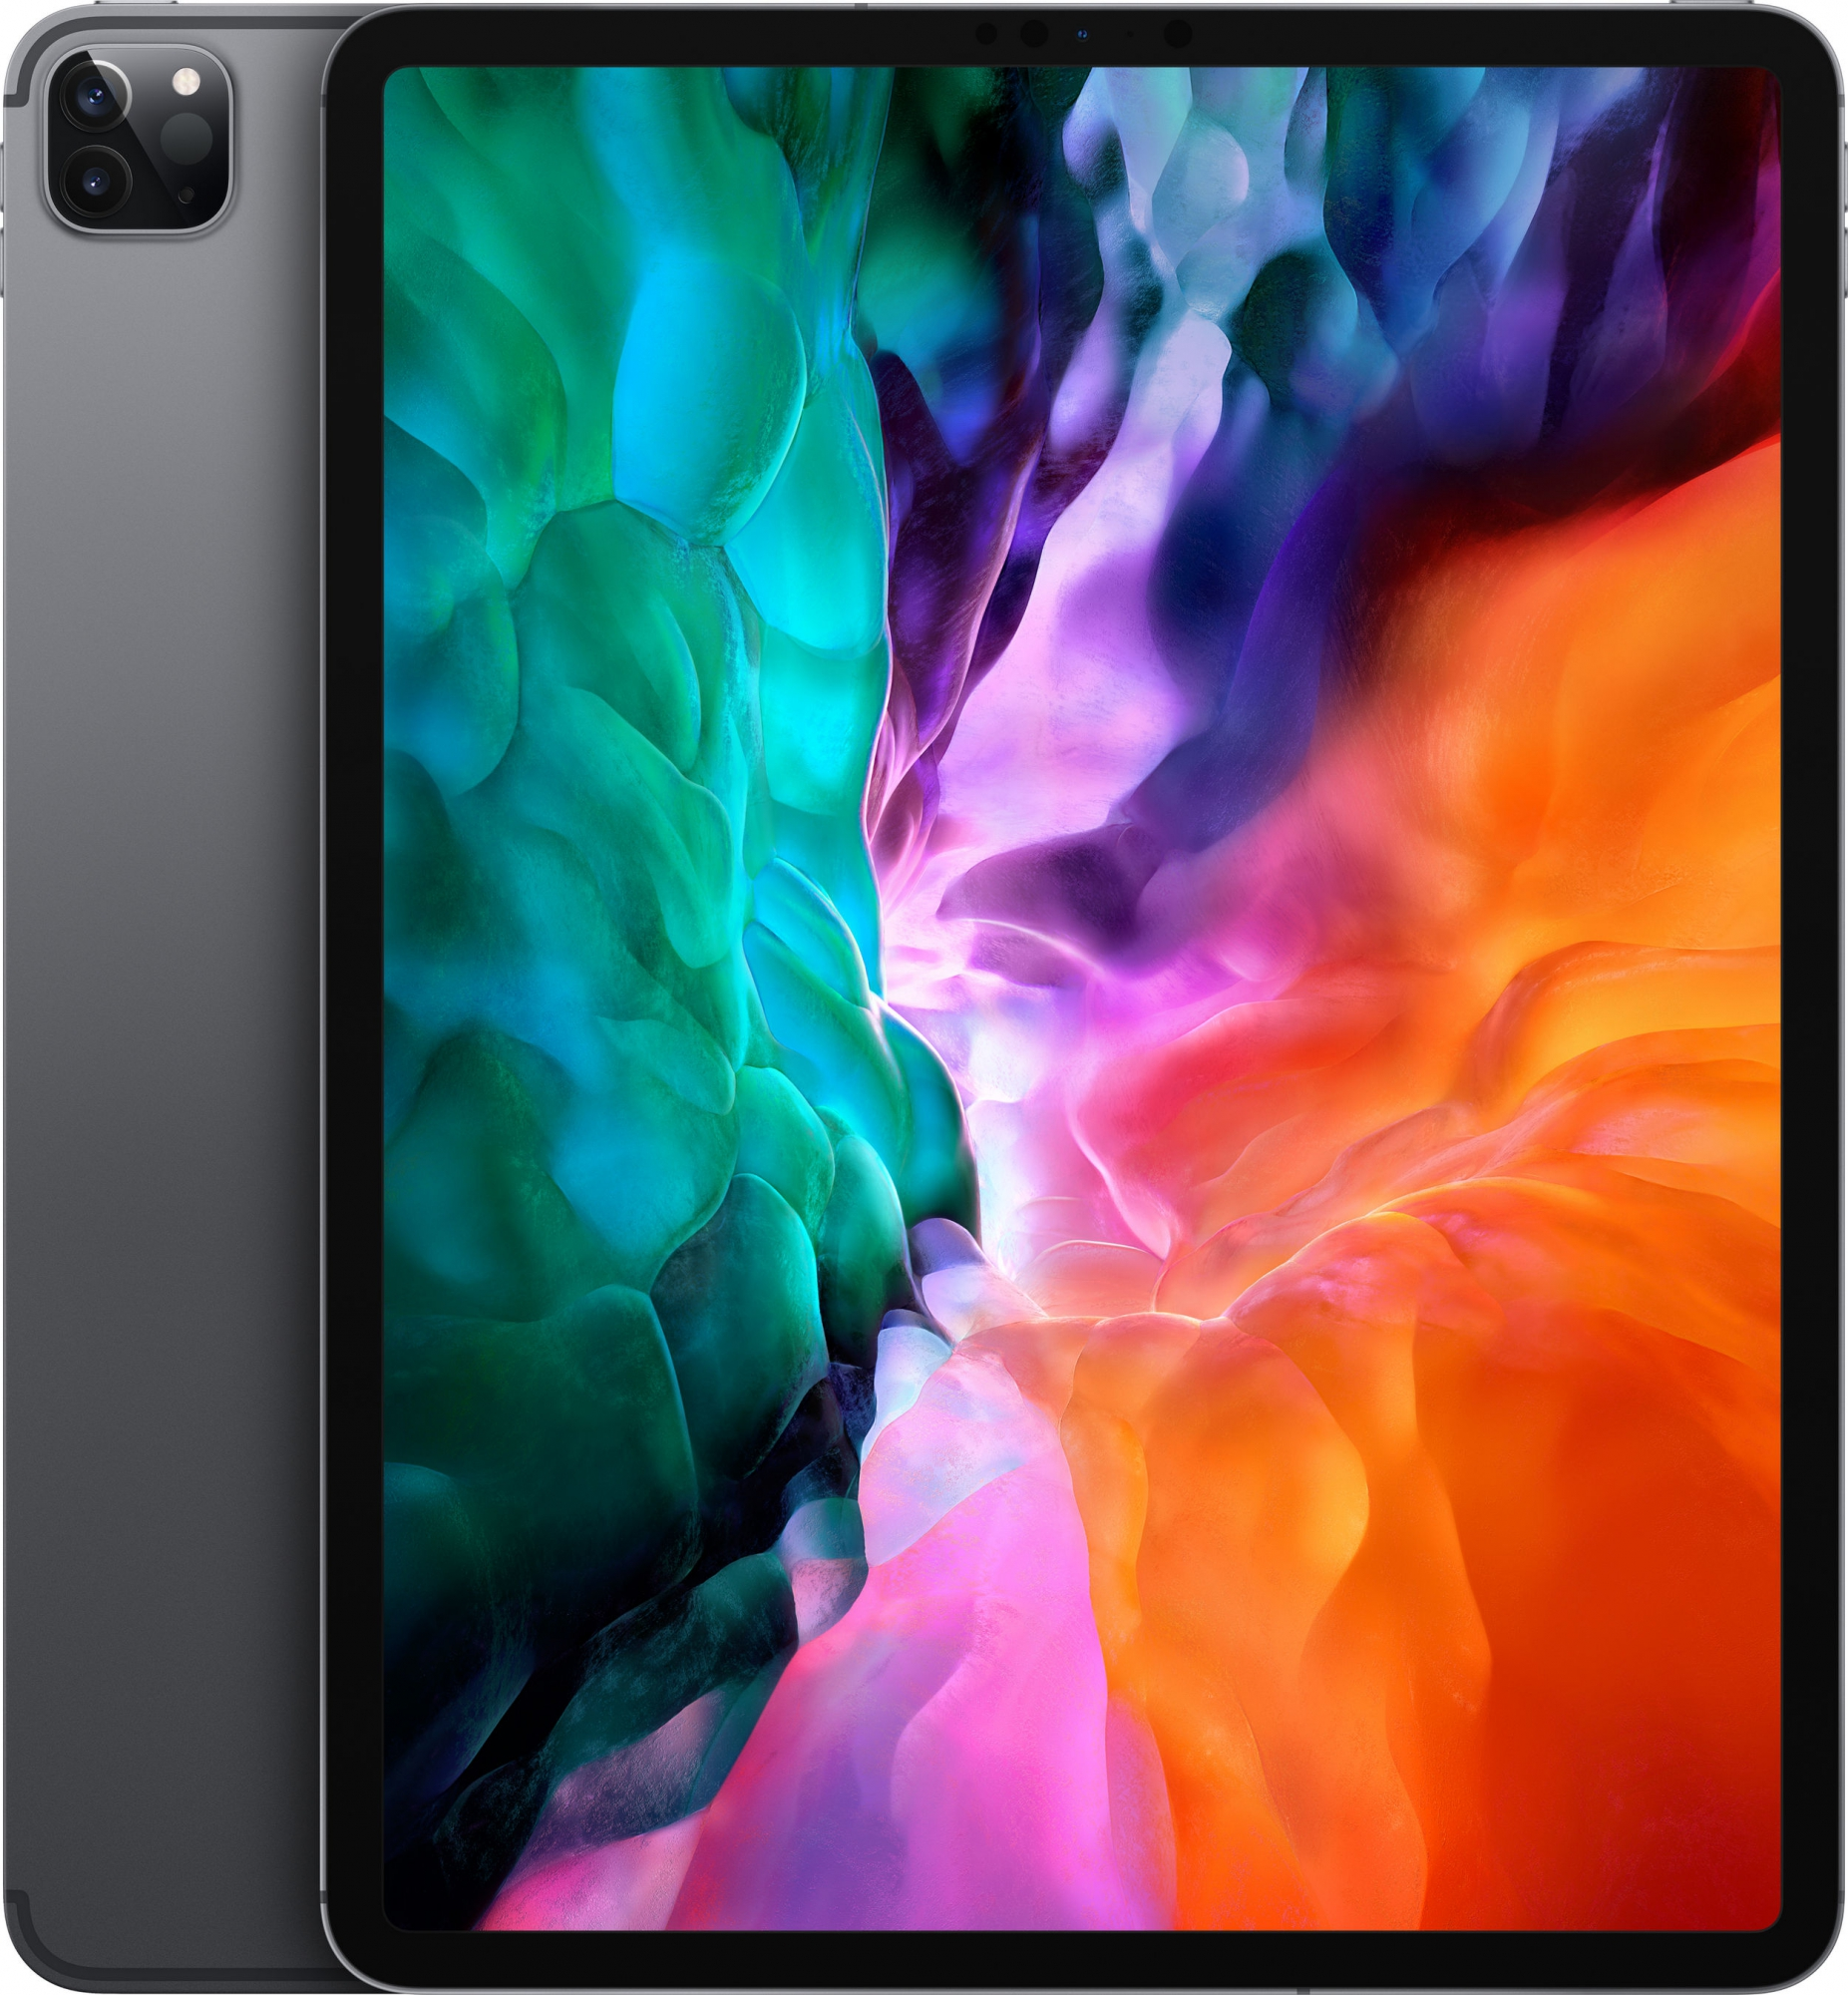 Планшет Apple iPad Pro 12.9 Wi-Fi + Cellular 512GB 2020 MXF72 (серый космос)